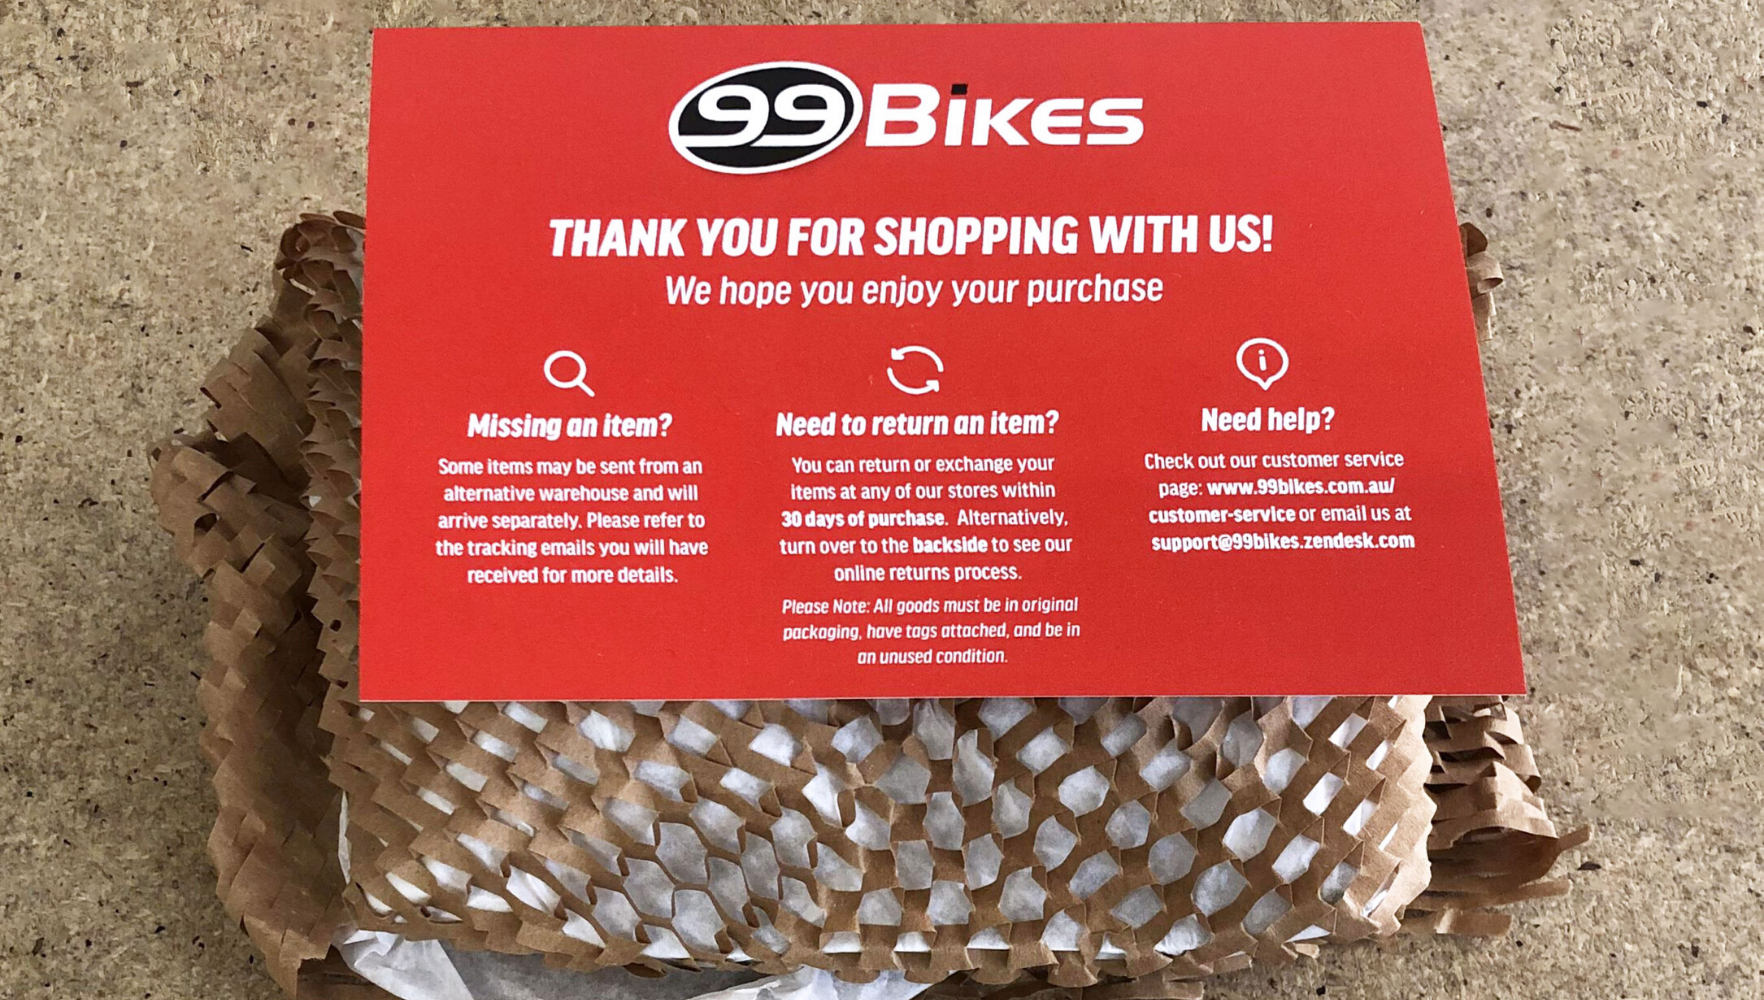 99 Bikes product wrapped in Geami